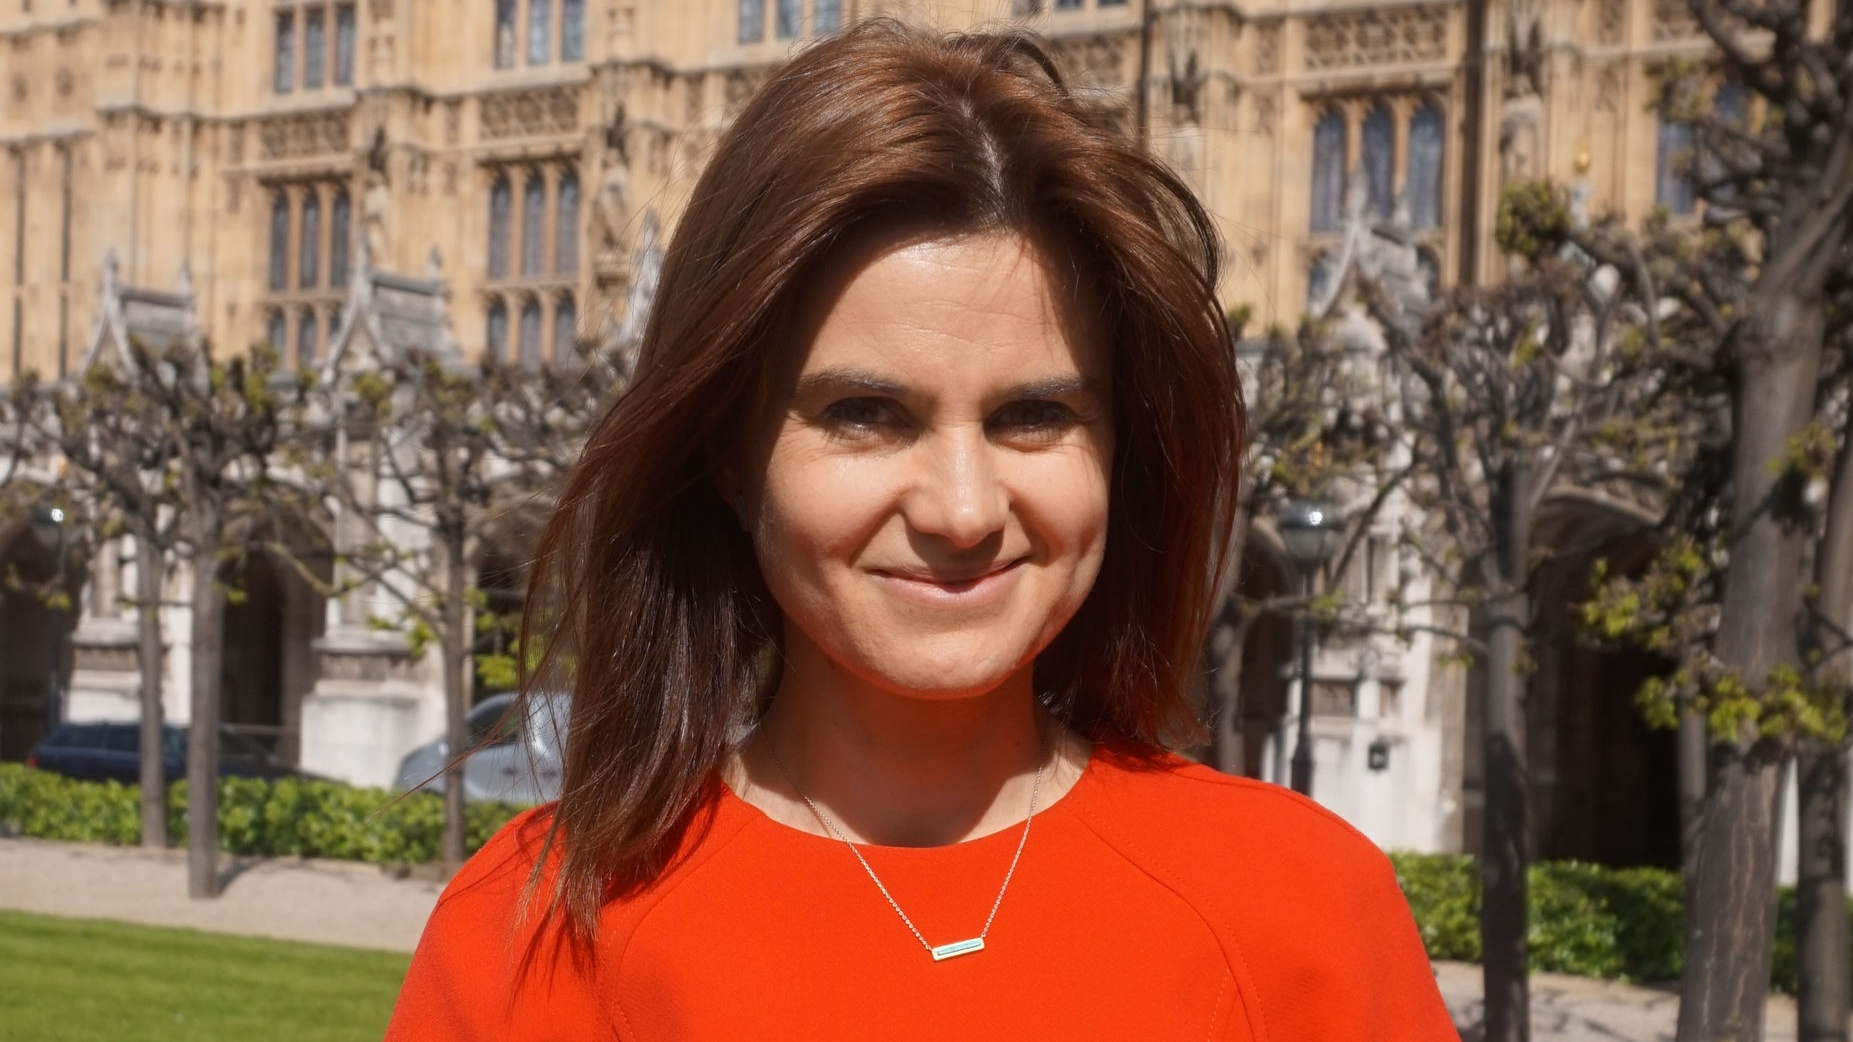 Heckmondwike and Spen to remember Jo Cox with family get togethers